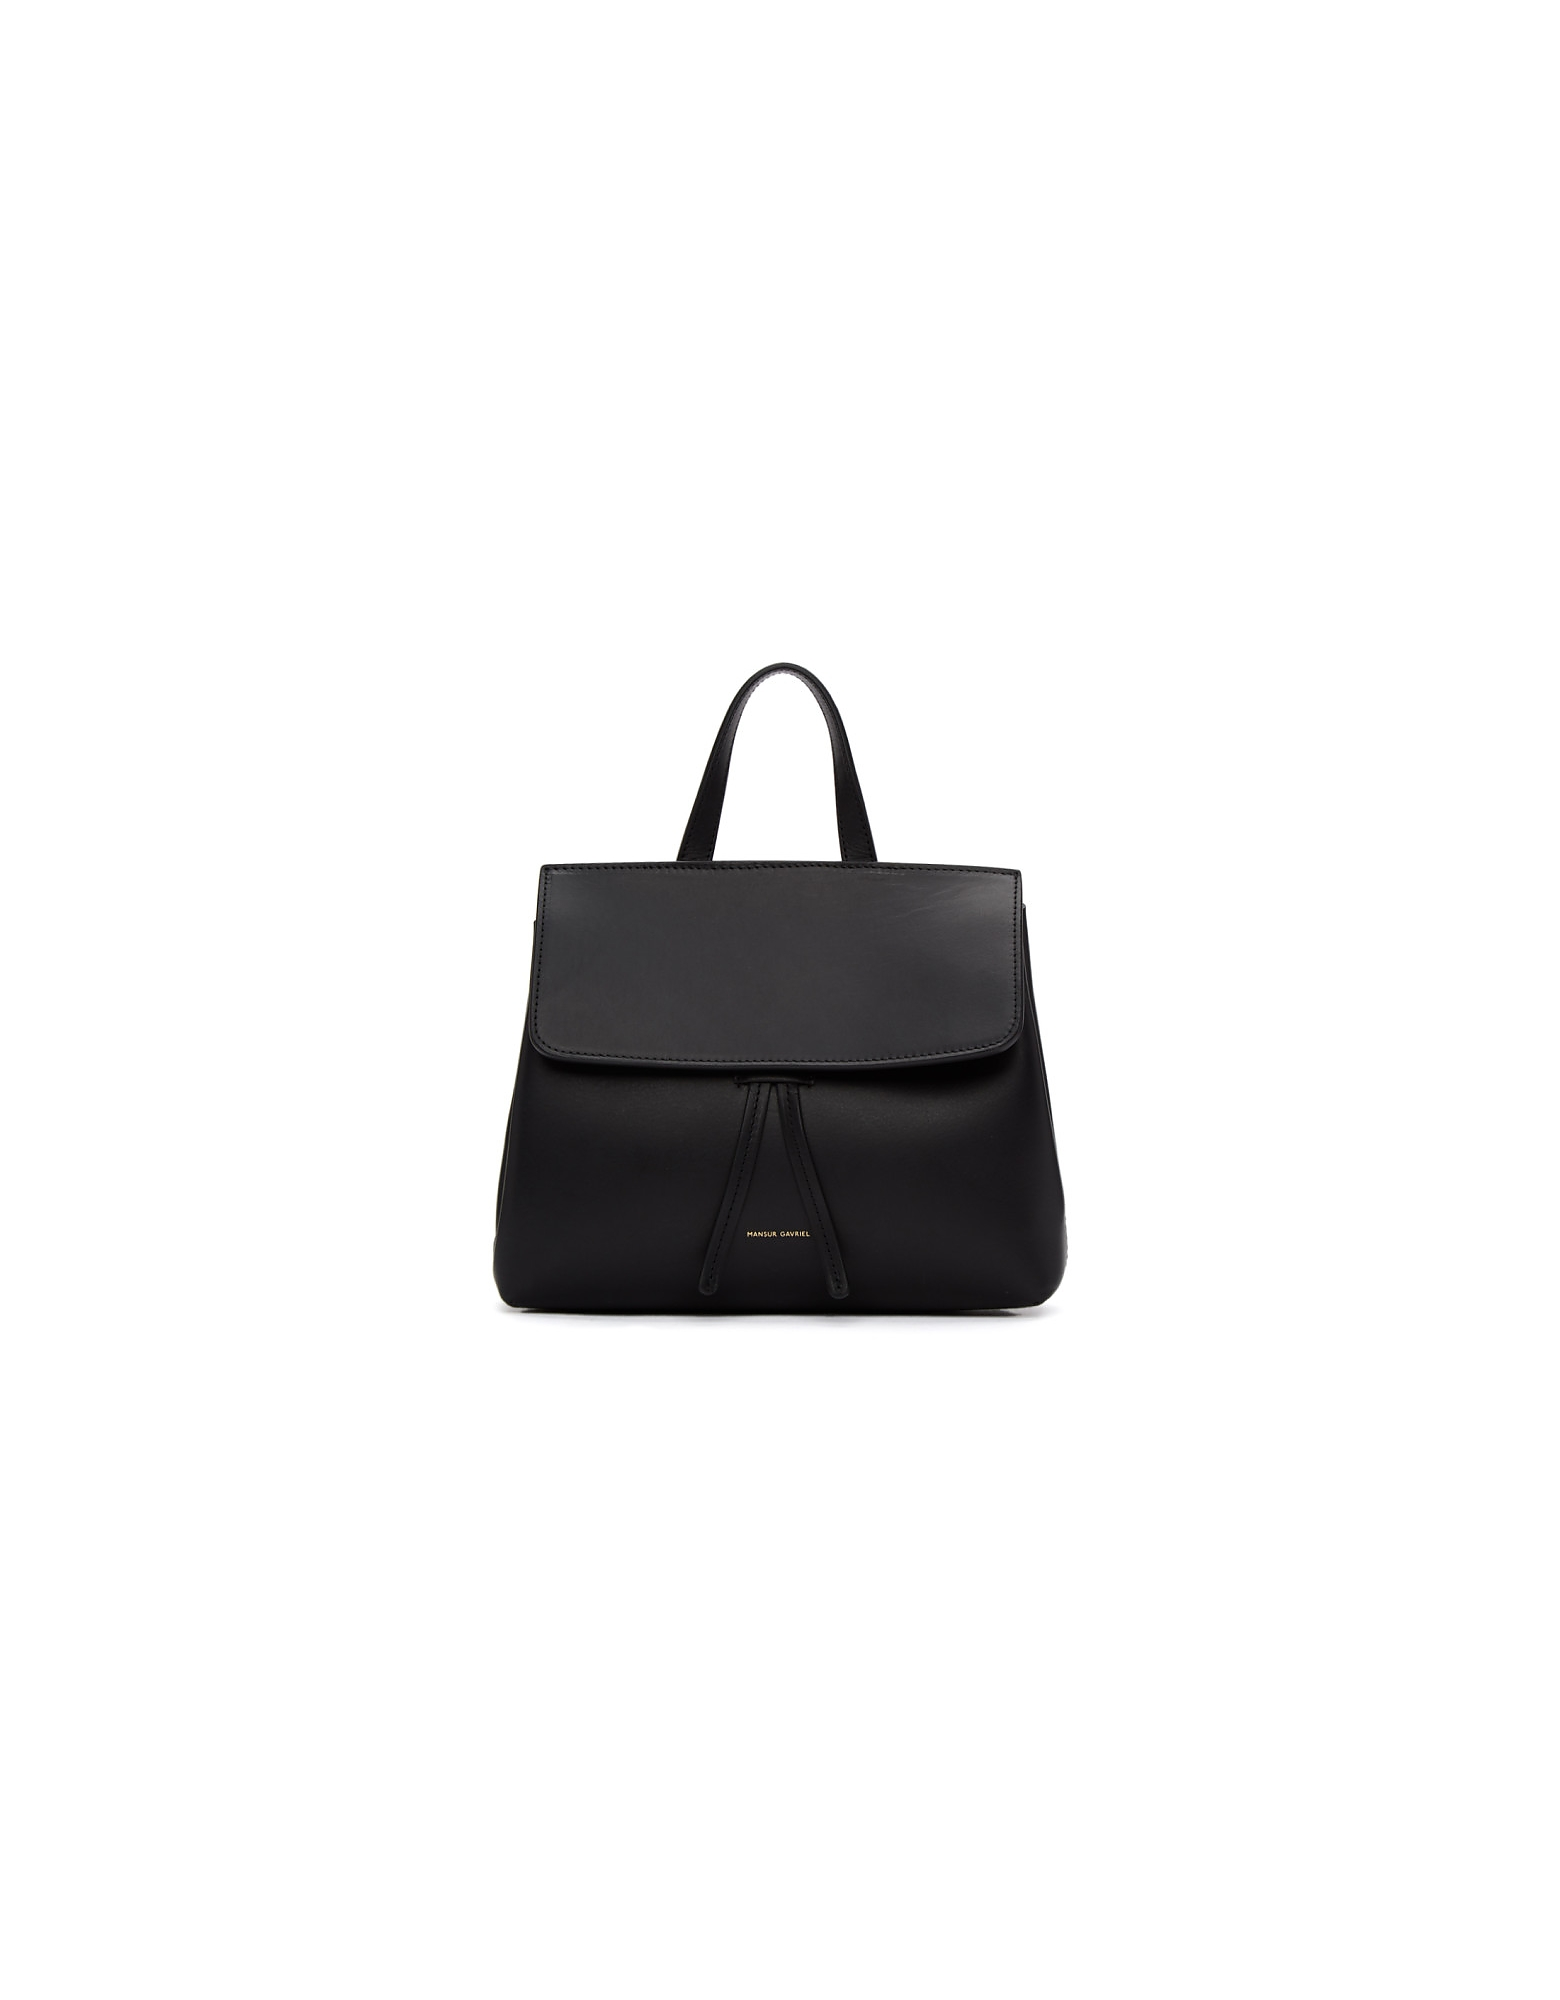 Mansur Gavriel Designer Handbags, Black Mini Mini Lady Bag